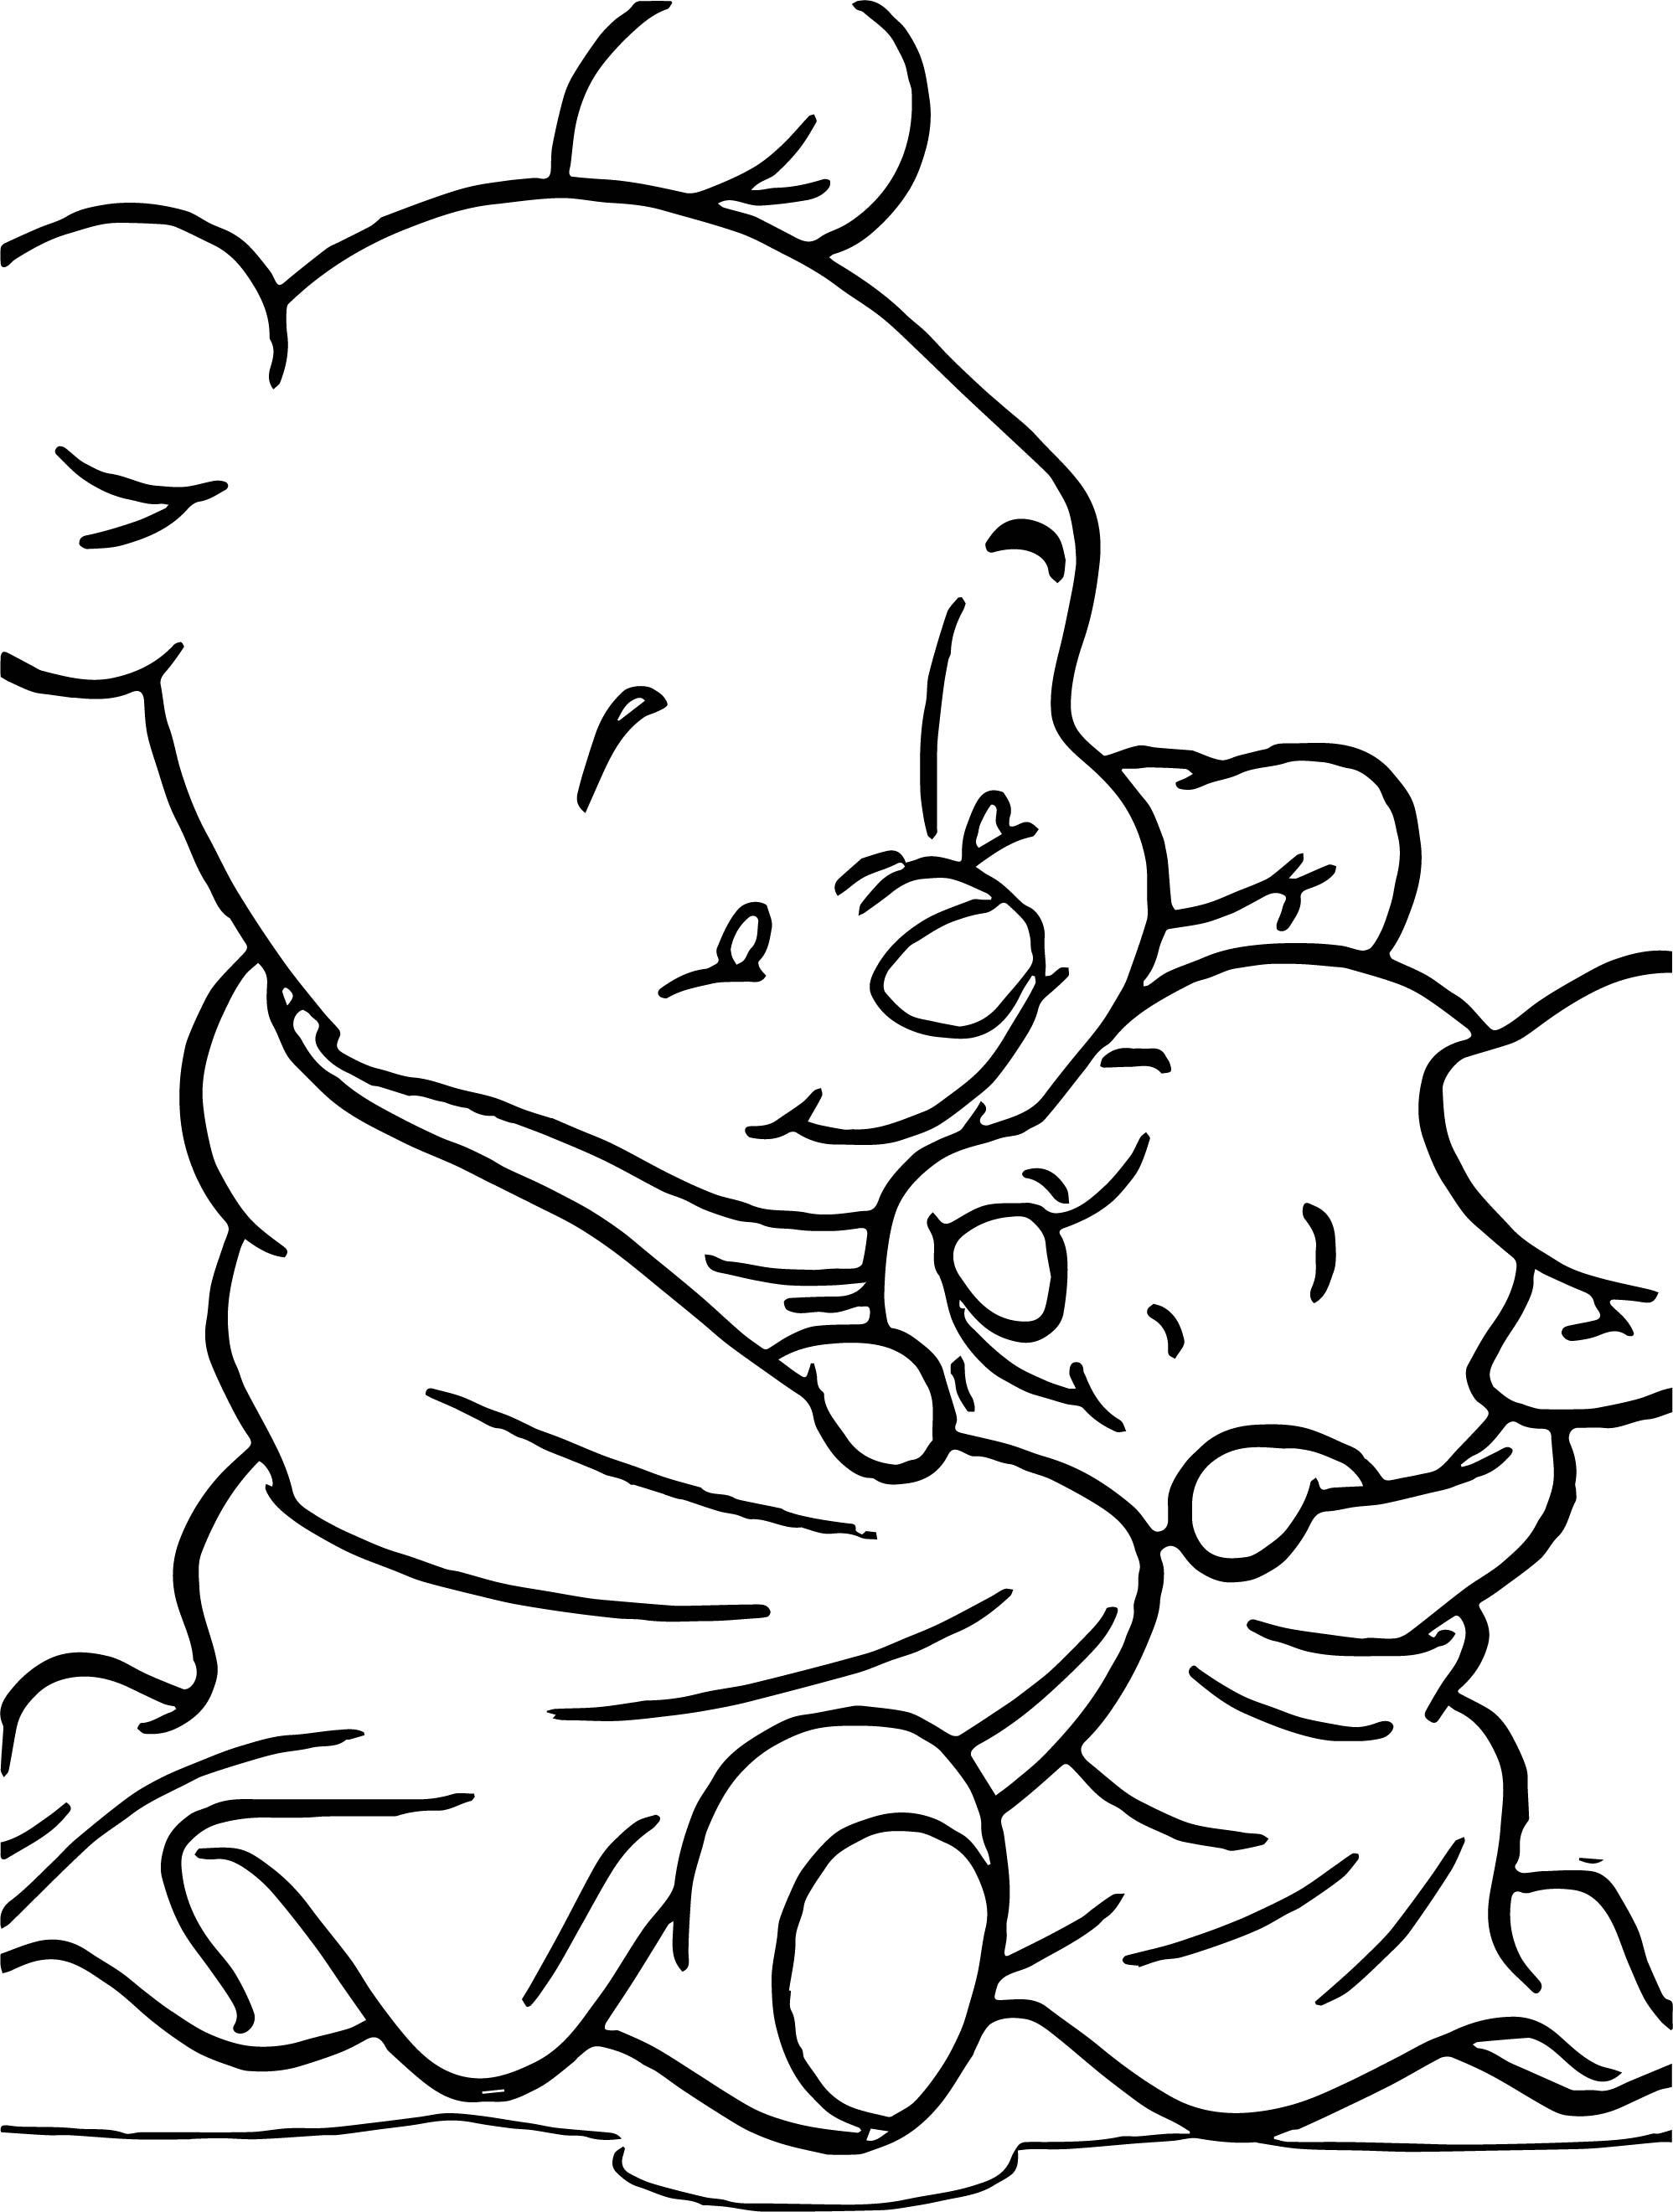 Awesome Baby Pooh Piglet Blanket Coloring Page Coloring Pages Coloring Pages For Boys Scripture Coloring Sheets